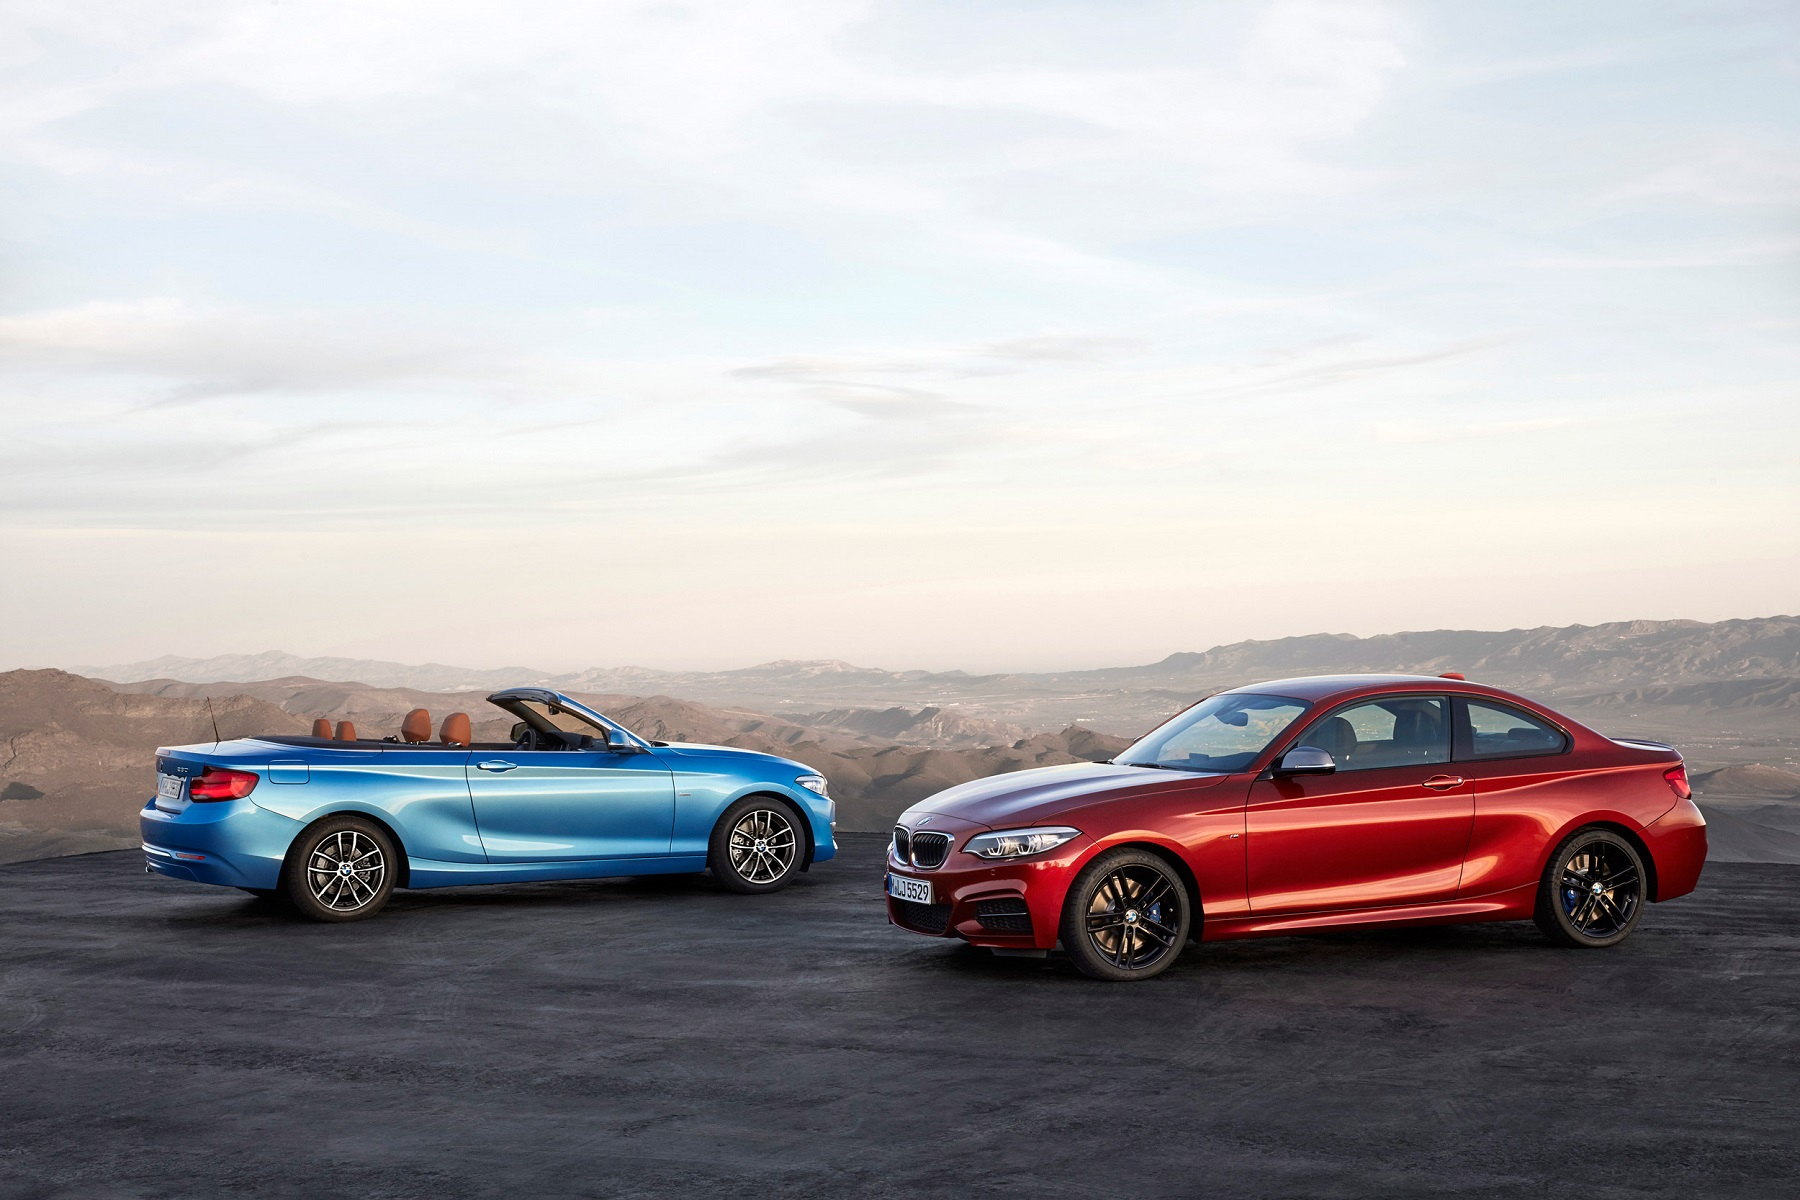 Manufacturer photo: The BMW 2 Series features the latest generation of BMW TwinPower Turbo 4-cylinder and 6-cylinder inline engines, that paired with specifically tuned chassis and suspension promotes a driving experience that fuels sporting ambition